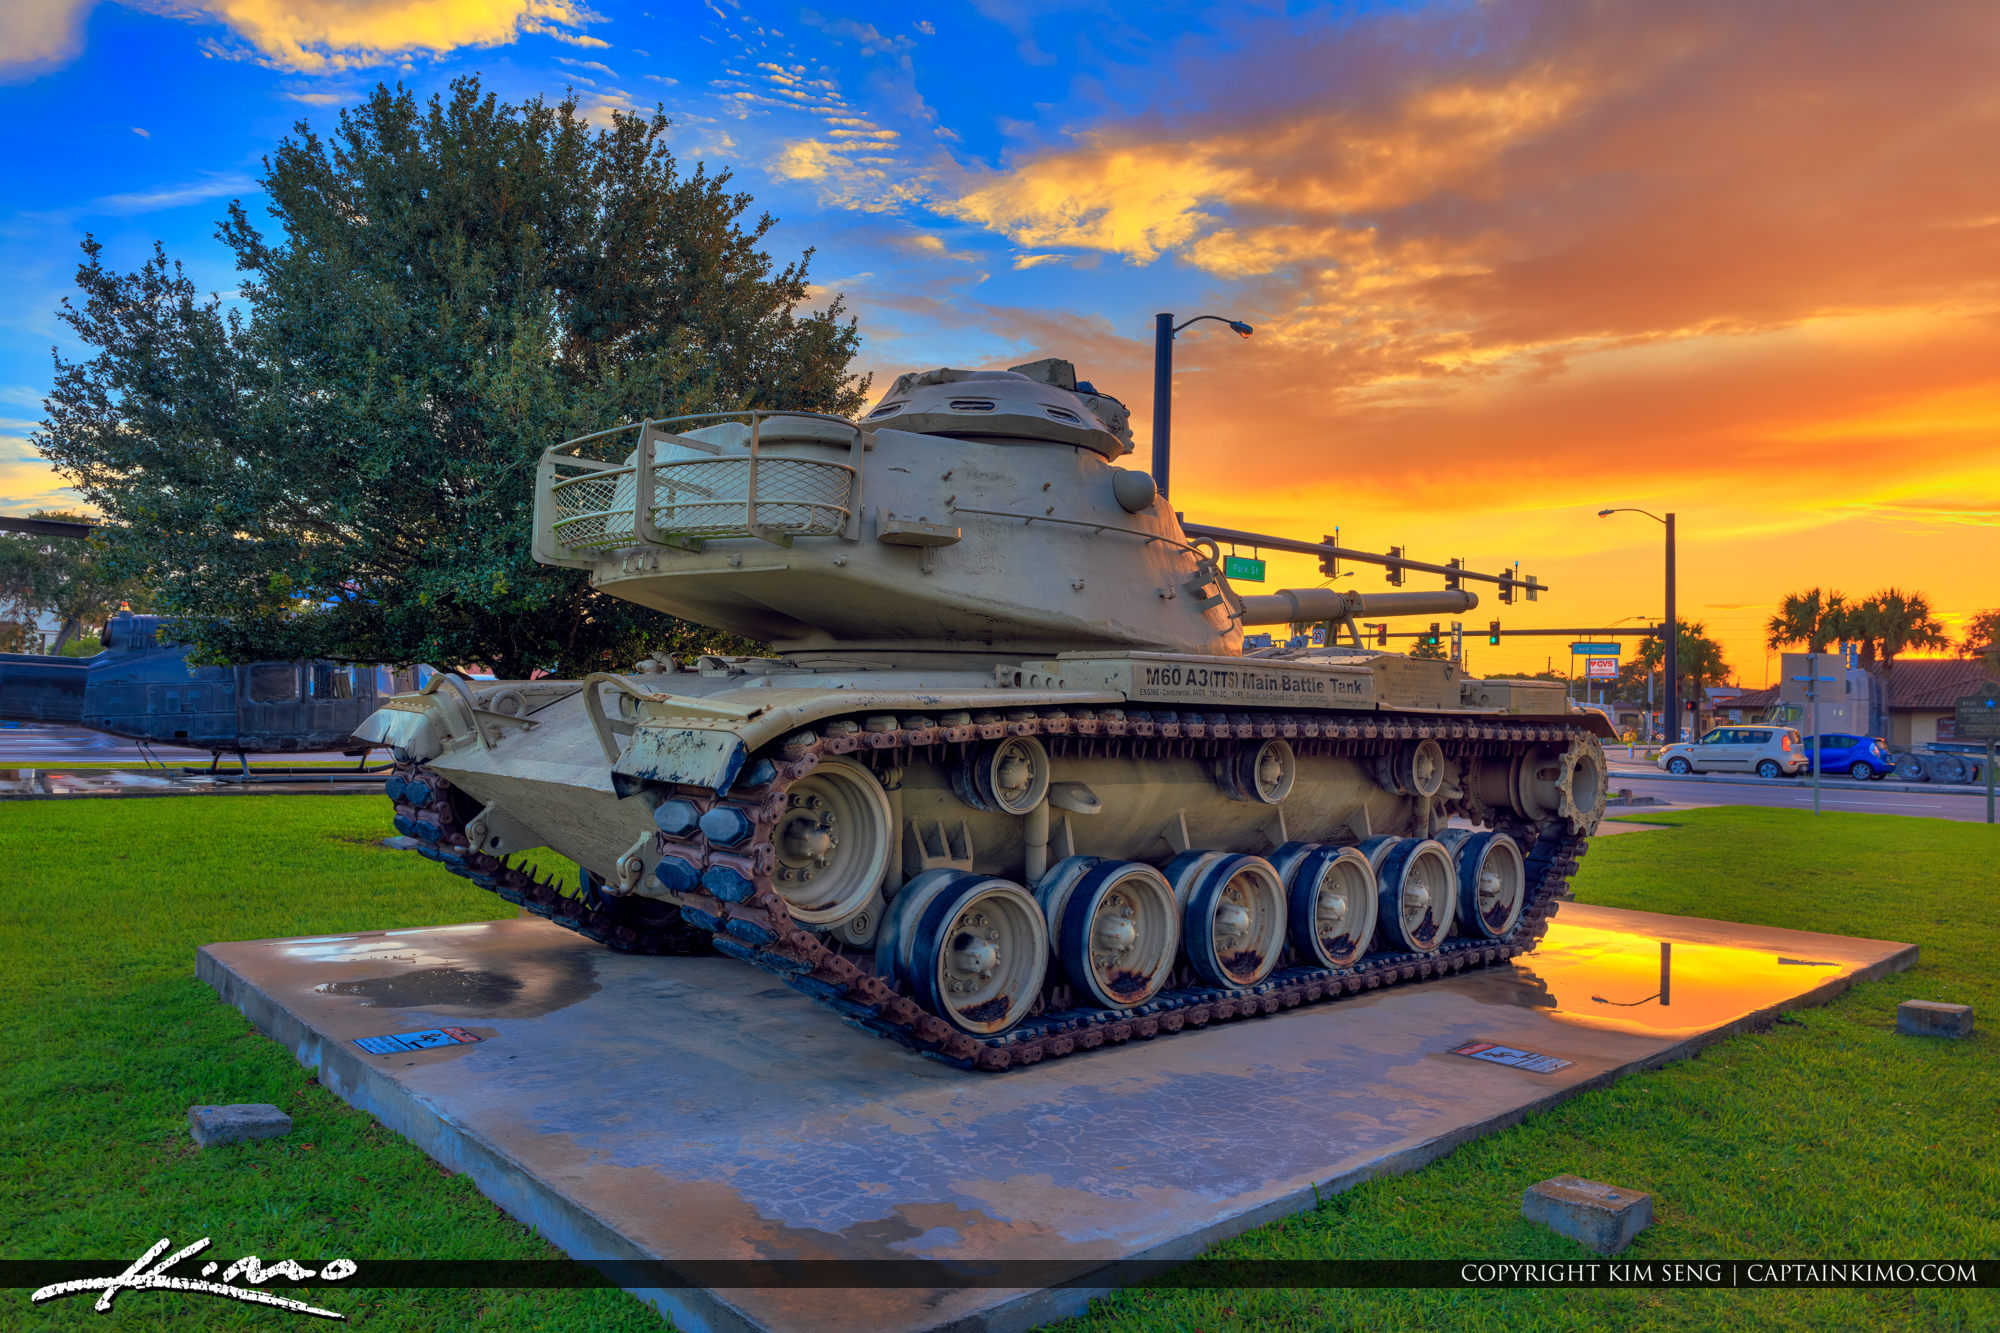 Okeechobee City Sunrise with Military Tank Memorial